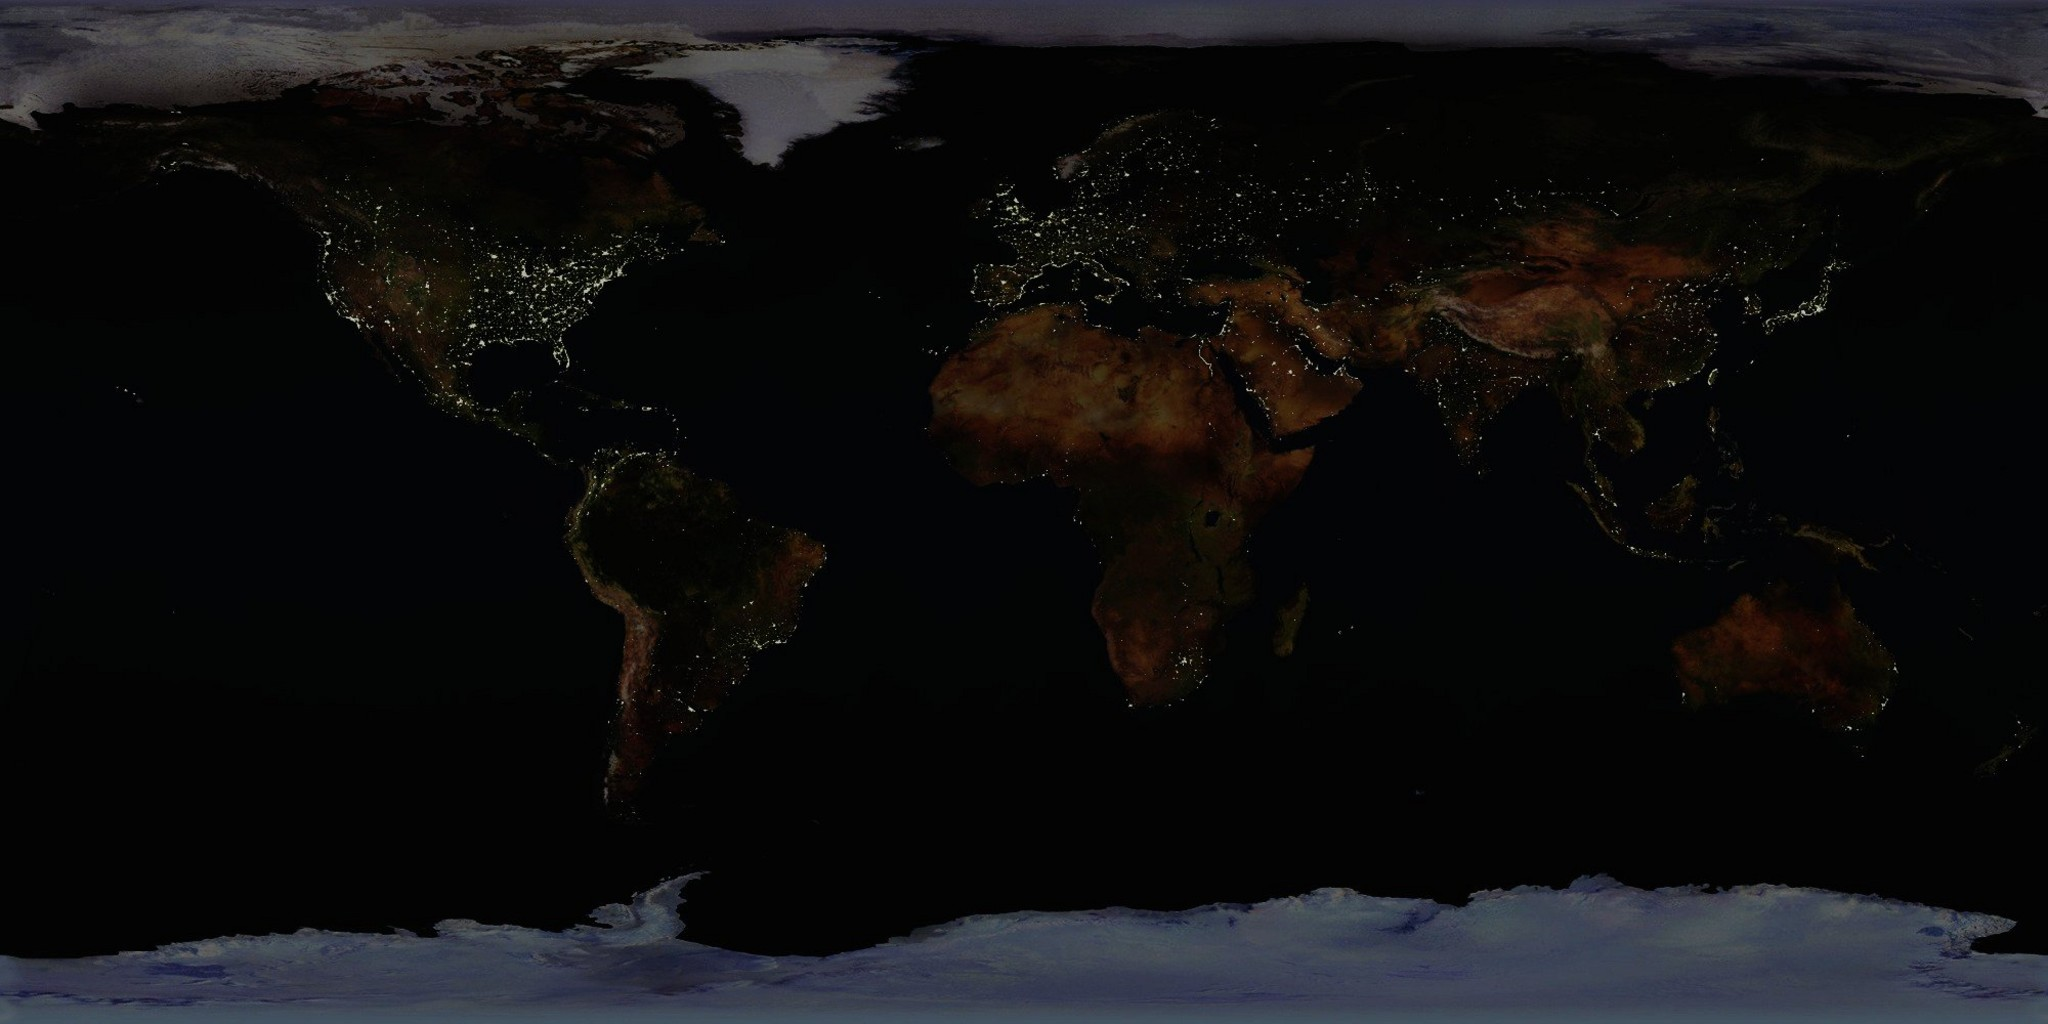 Xplanet maps night map for earth gumiabroncs Choice Image